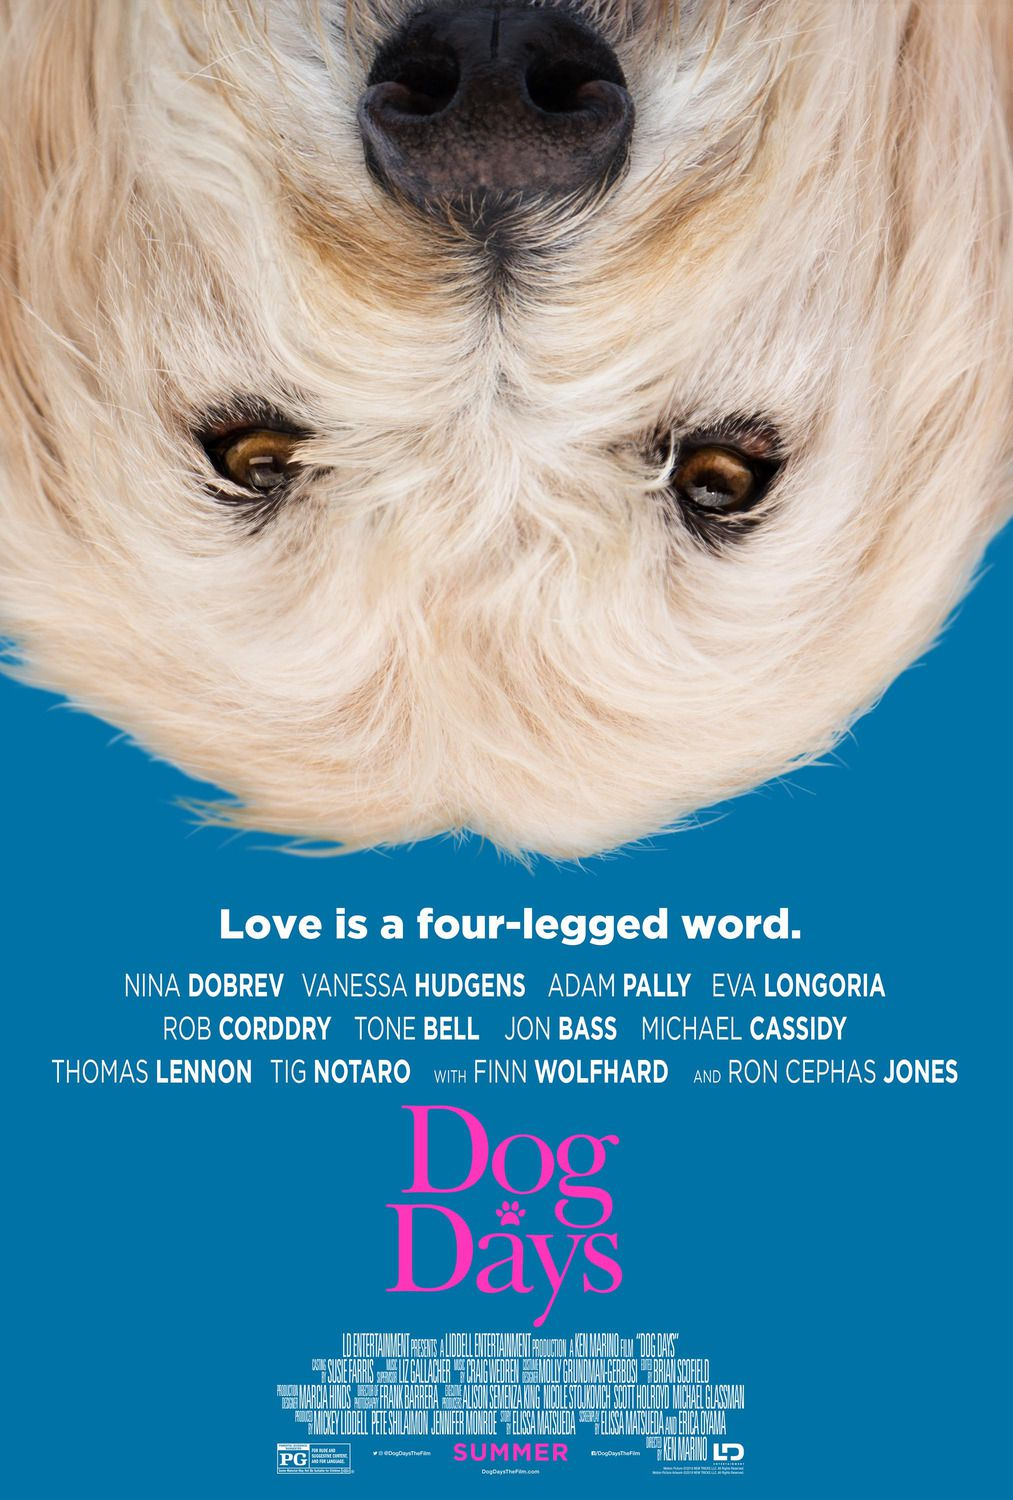 Dog Days (2018) - Love is a four-legged word